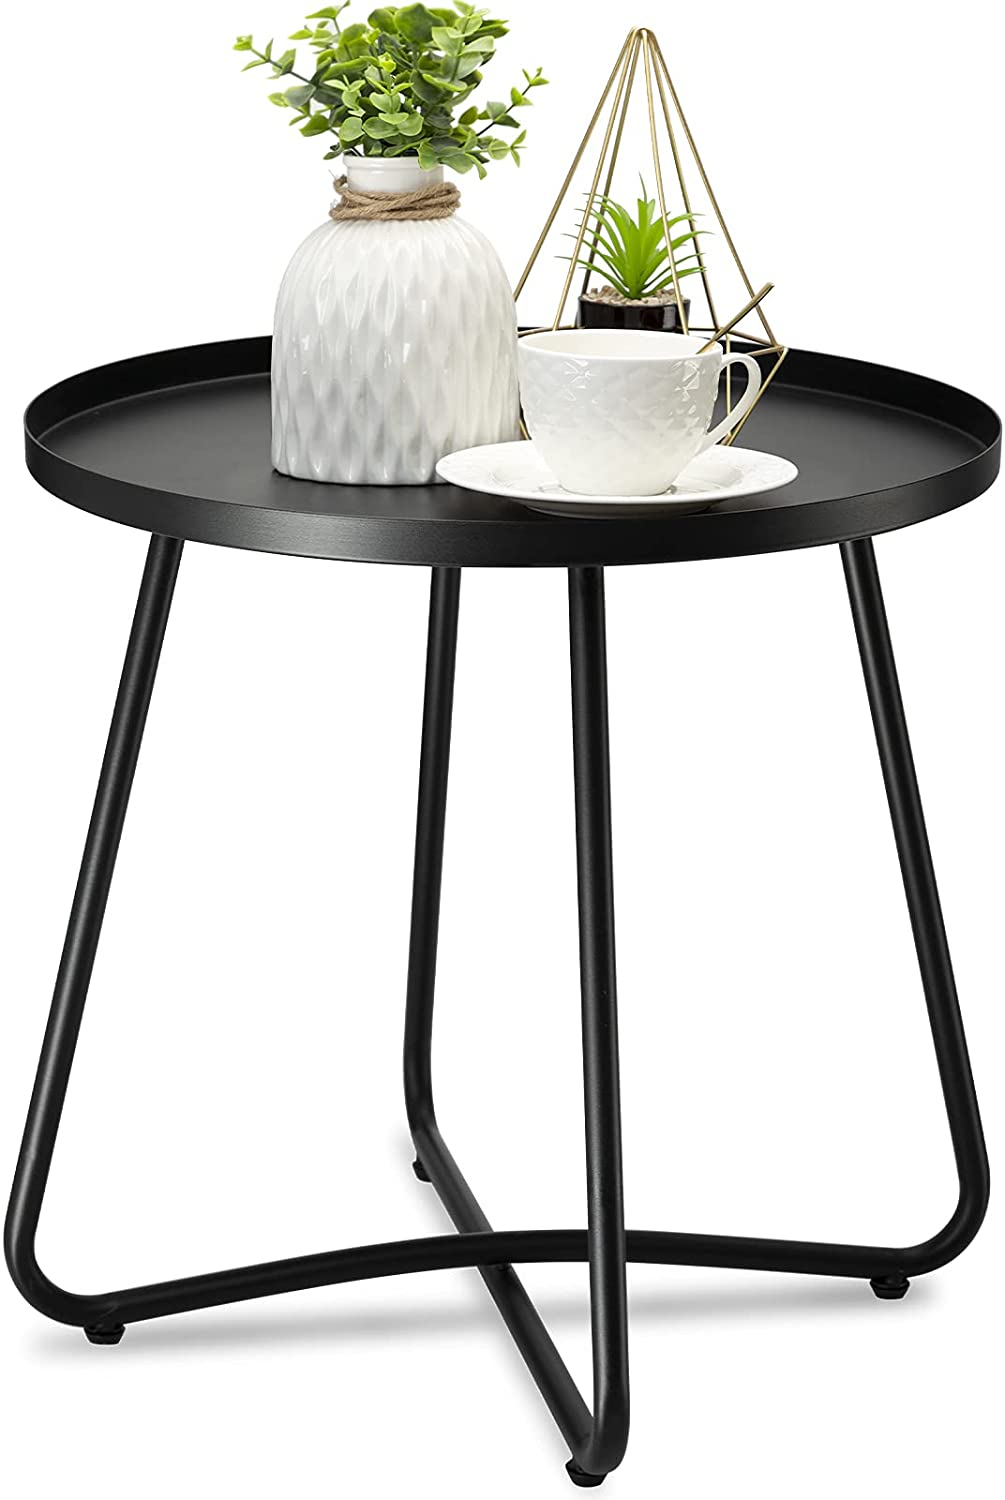 danpinera Outdoor Side Tables, Weather Resistant Steel Patio Side Table, Small Round Outdoor End Table Metal Side Table for Patio Yard Balcony Garden Bedside Black